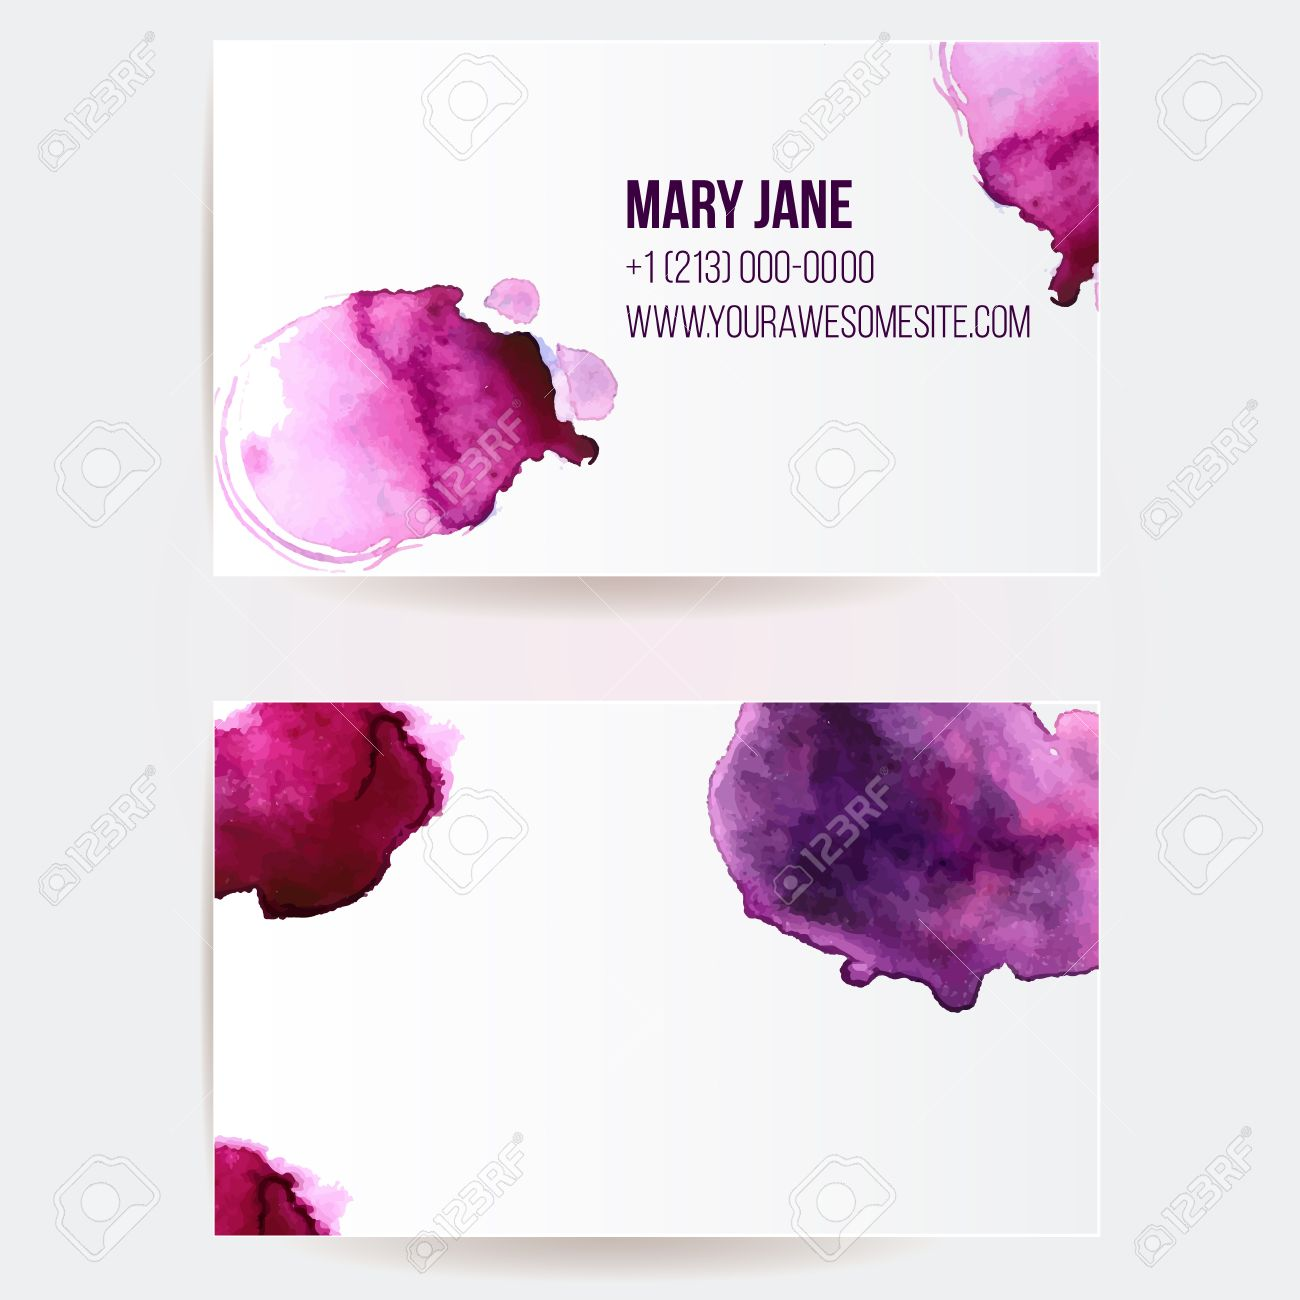 Double Sided Business Card Template With Pink And Violet ...